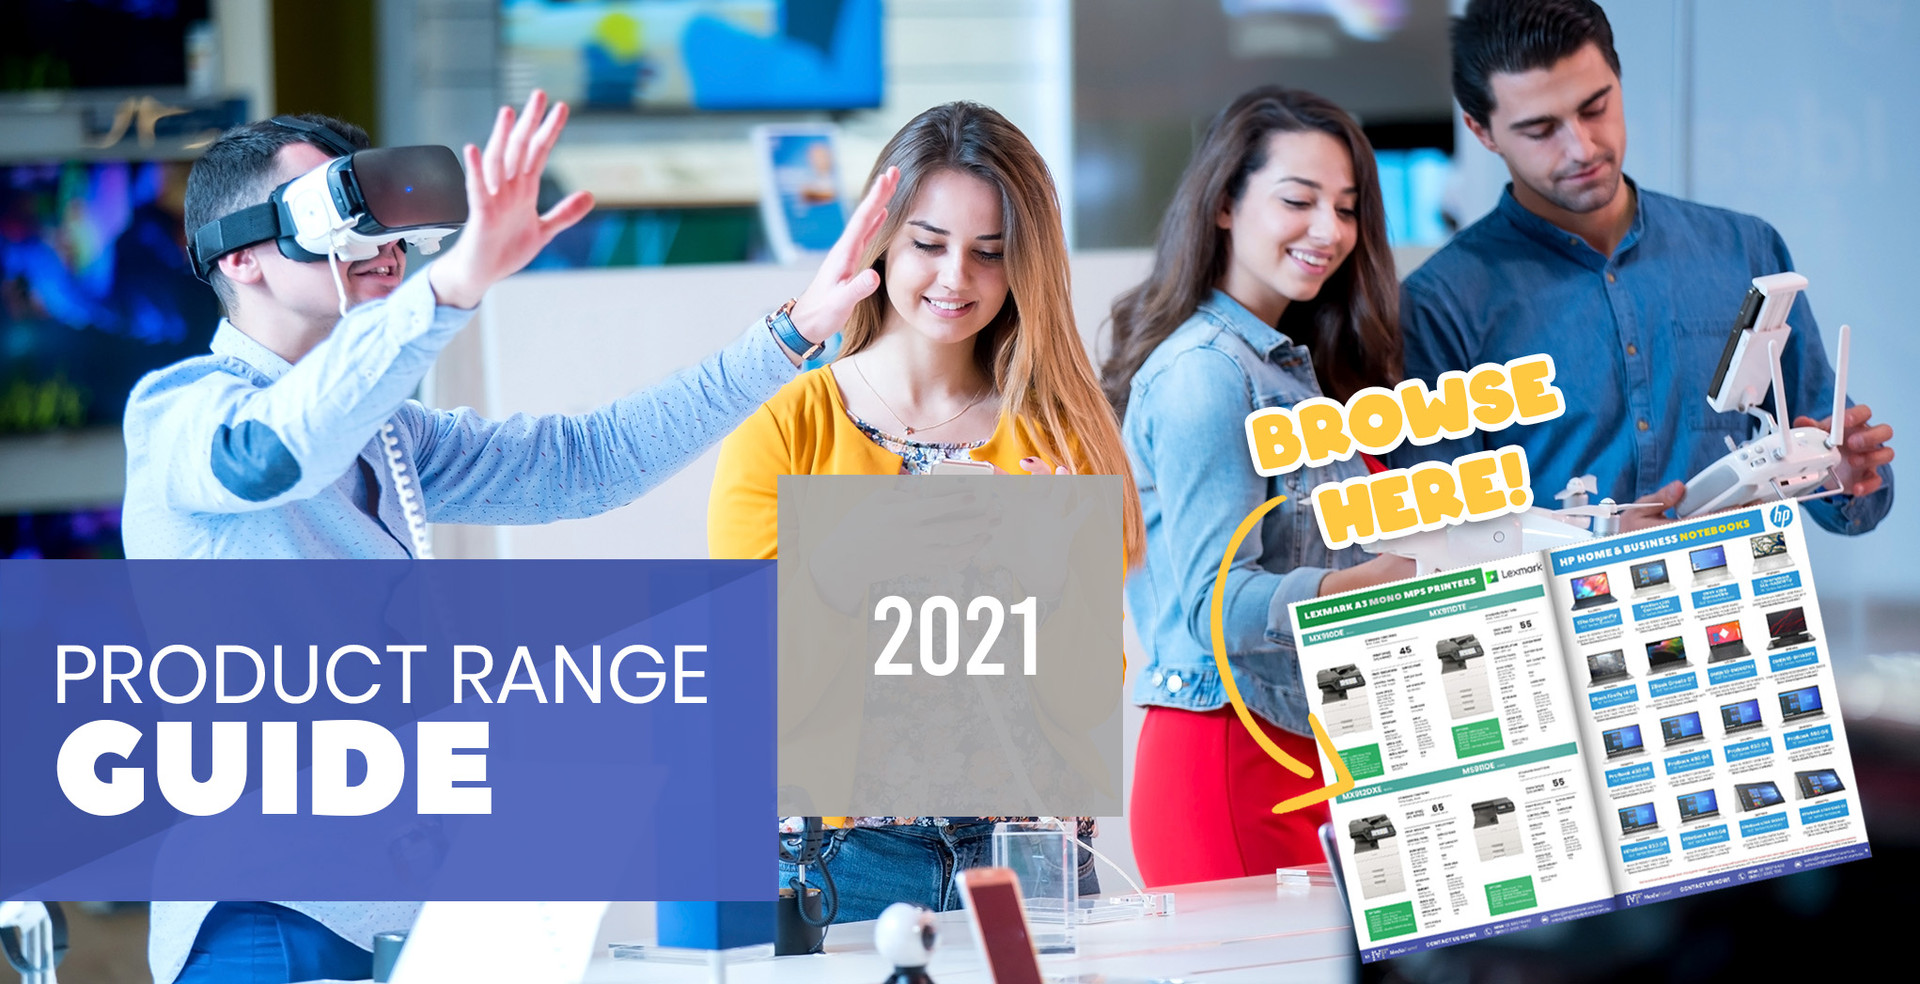 Our 2021 Product Range Catalogue is now online